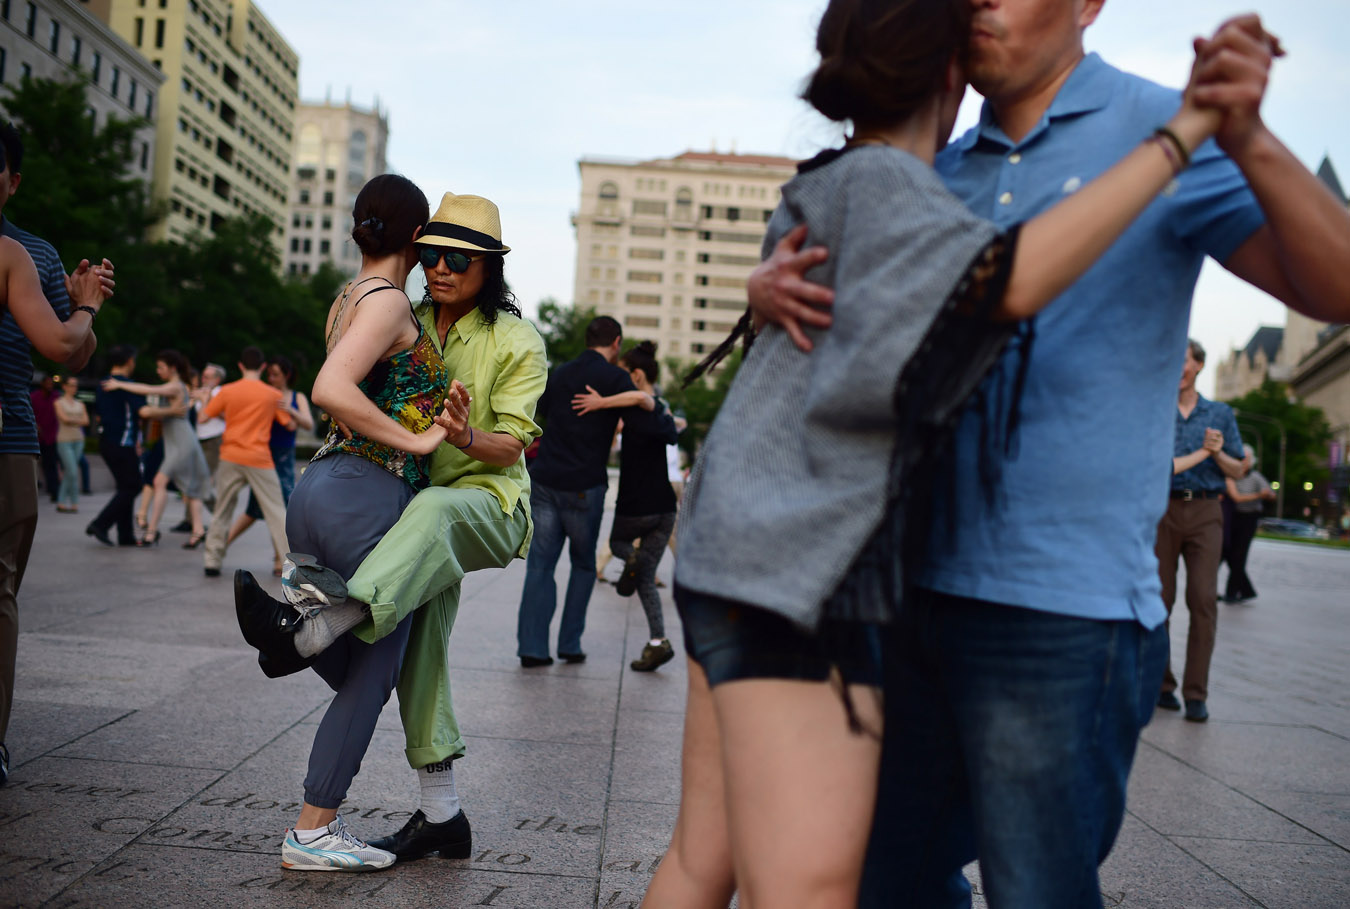 Sylvia Christie, left, and Dong Kim, left center, take part in tango dancing at Freedom Plaza on Sunday June 07, 2015 in Washington, DC. (Photo by Matt McClain/ The Washington Post)